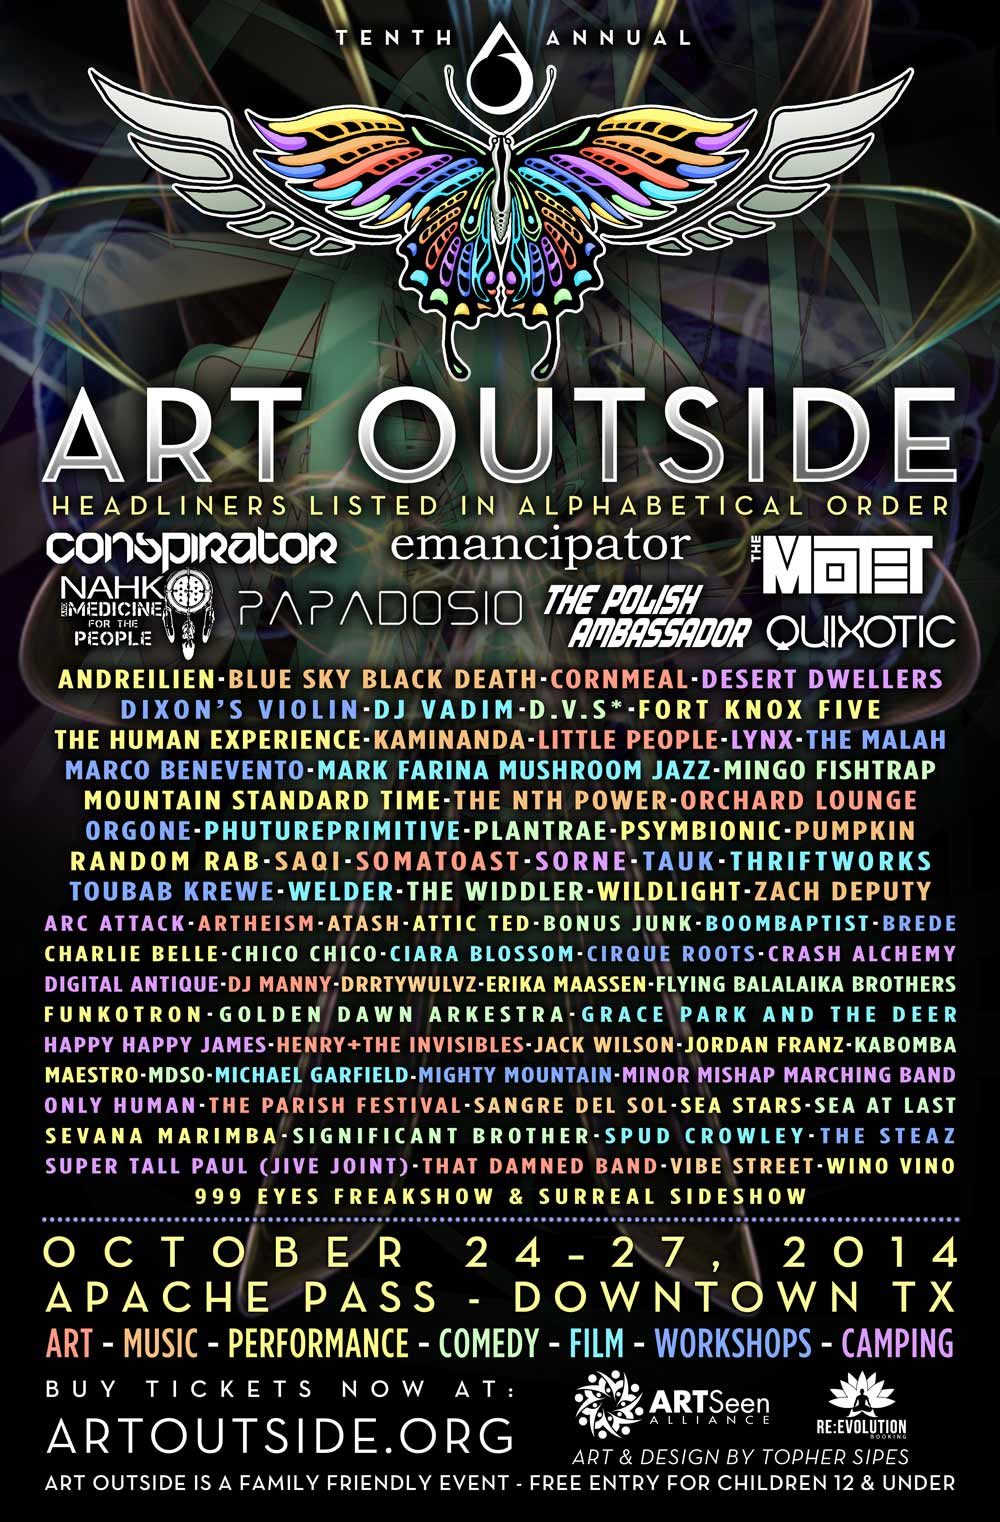 Art Outside, The Best Fall Festival in Texas, Really! A Festival Preview by Rich Denis